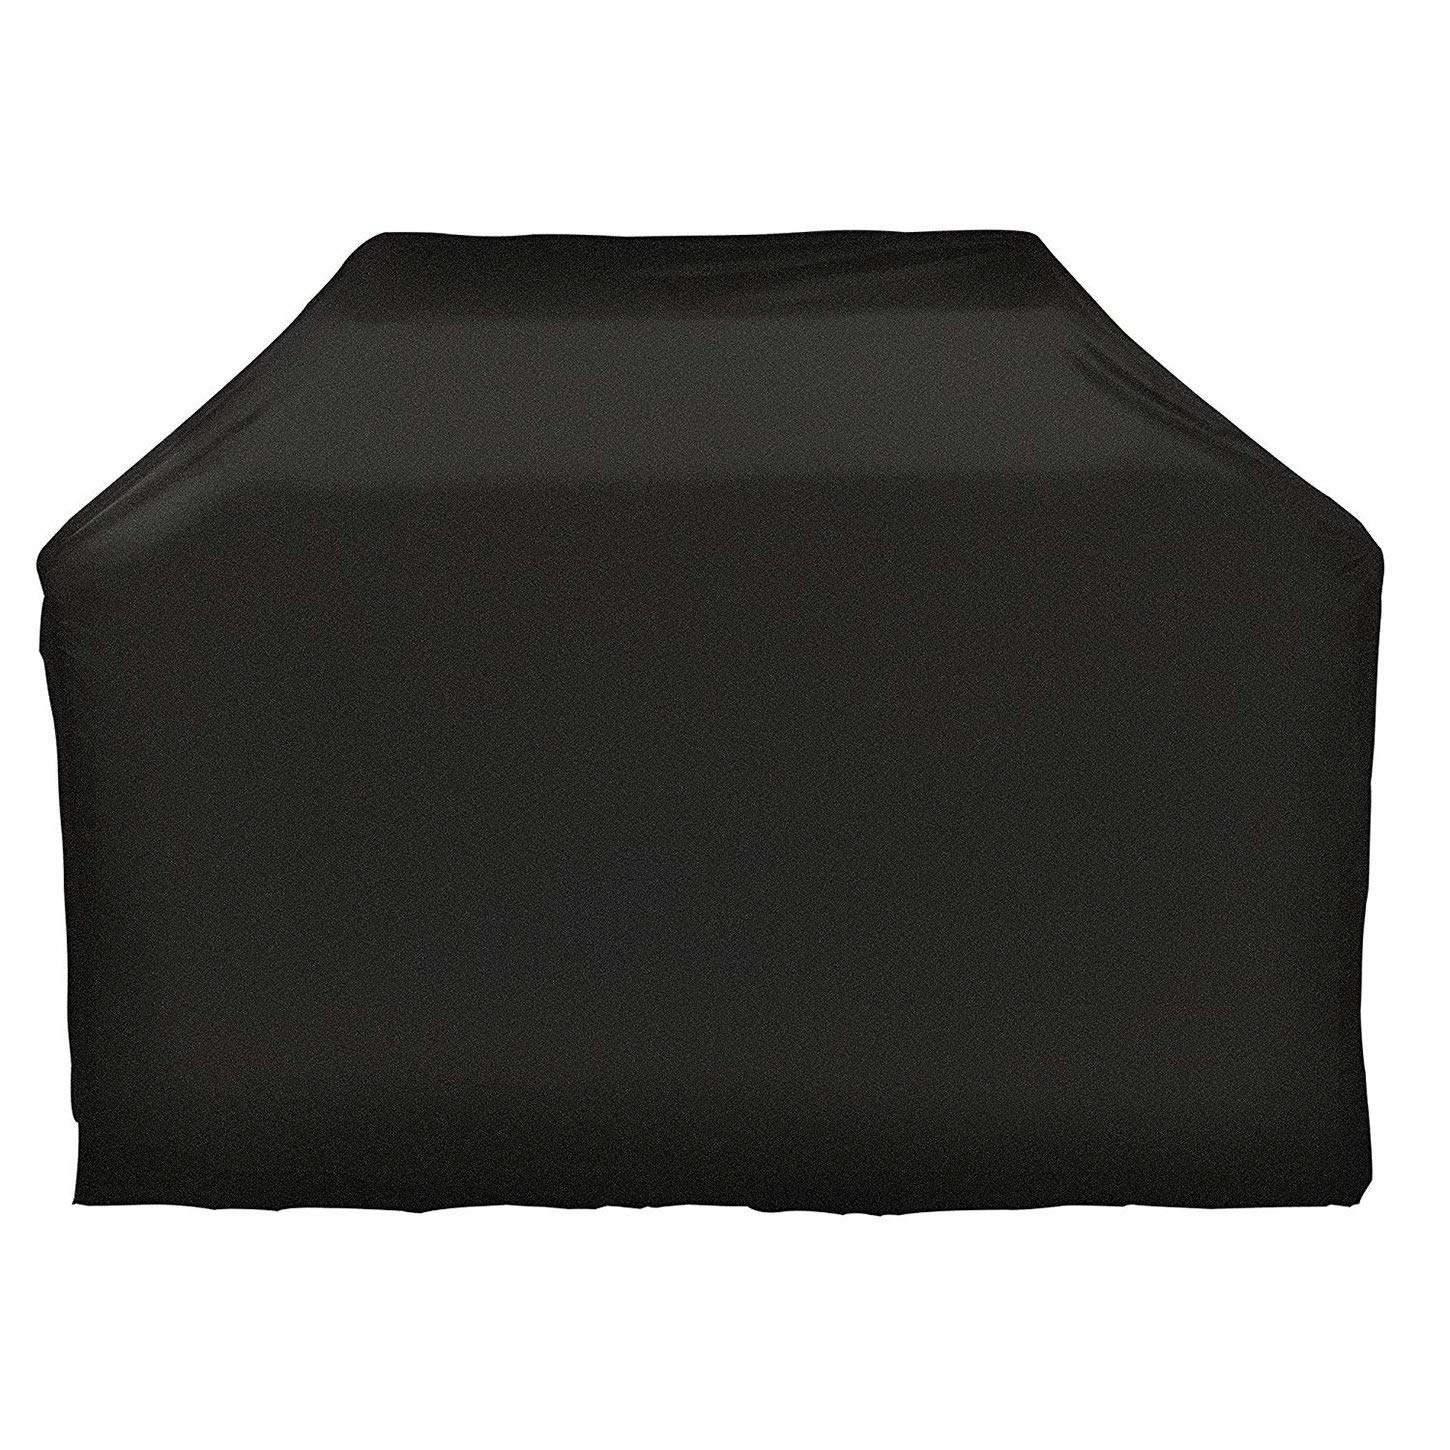 CNSE Grill Cover, Medium 57-Inch Water Proof Patio Outdoor BBQ Barbecue Smoker/Grill Cover for Weber, Holland, Jenn Air, Brinkmann and Char Broil -Black